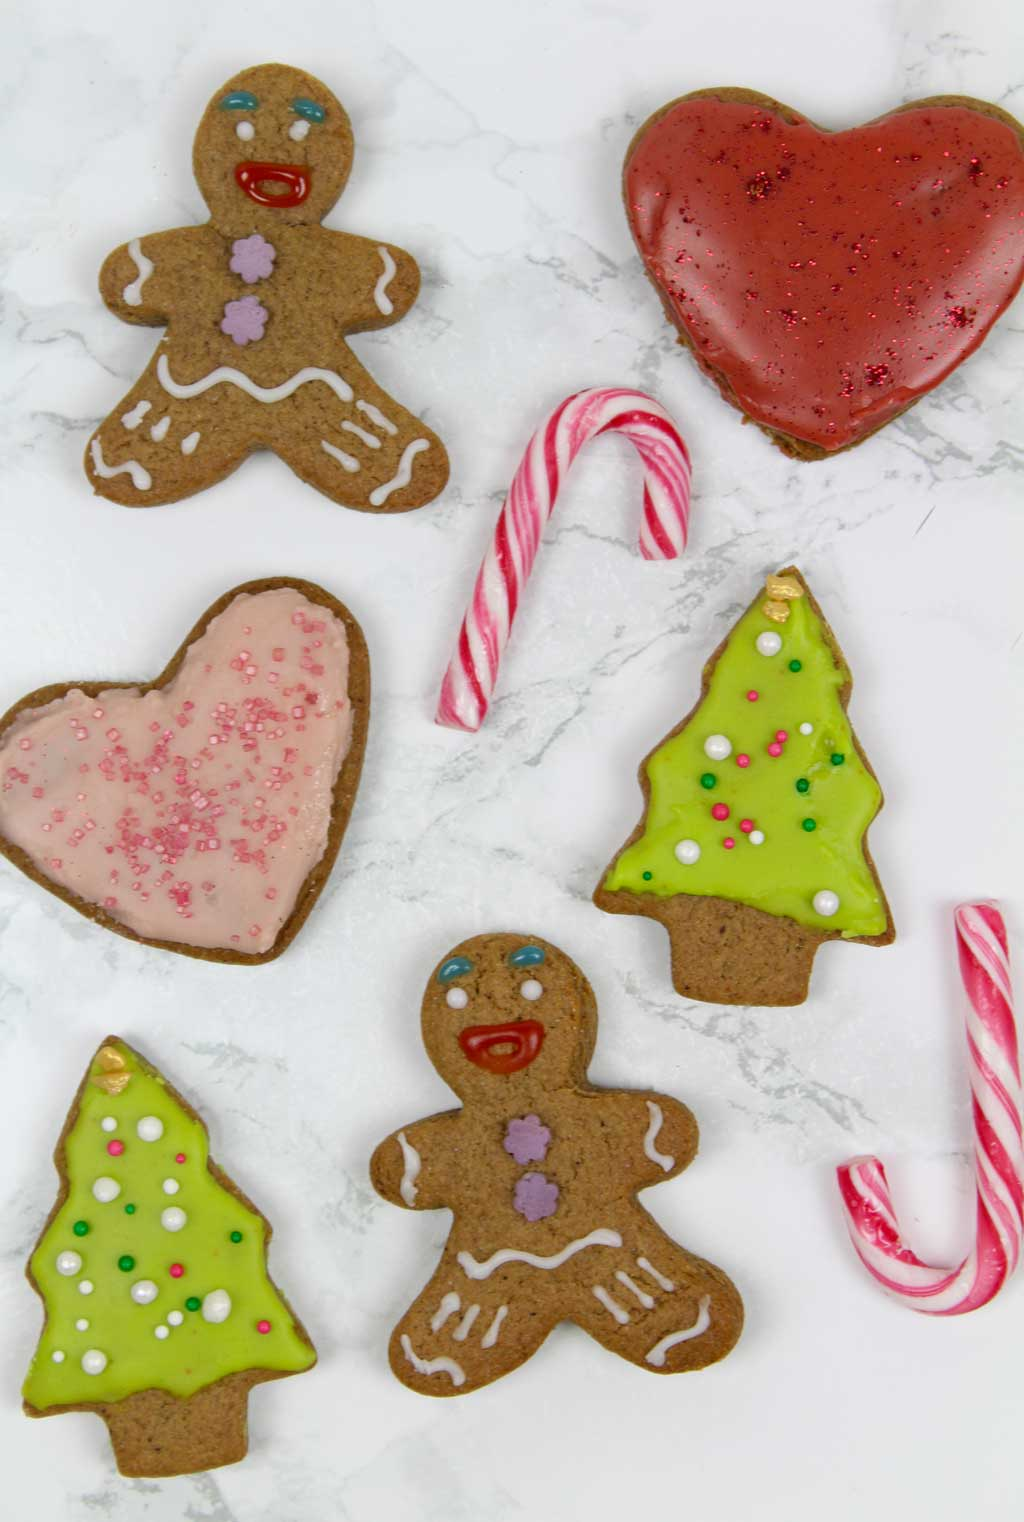 a variety of vegan gingerbread cookies decorated with icing